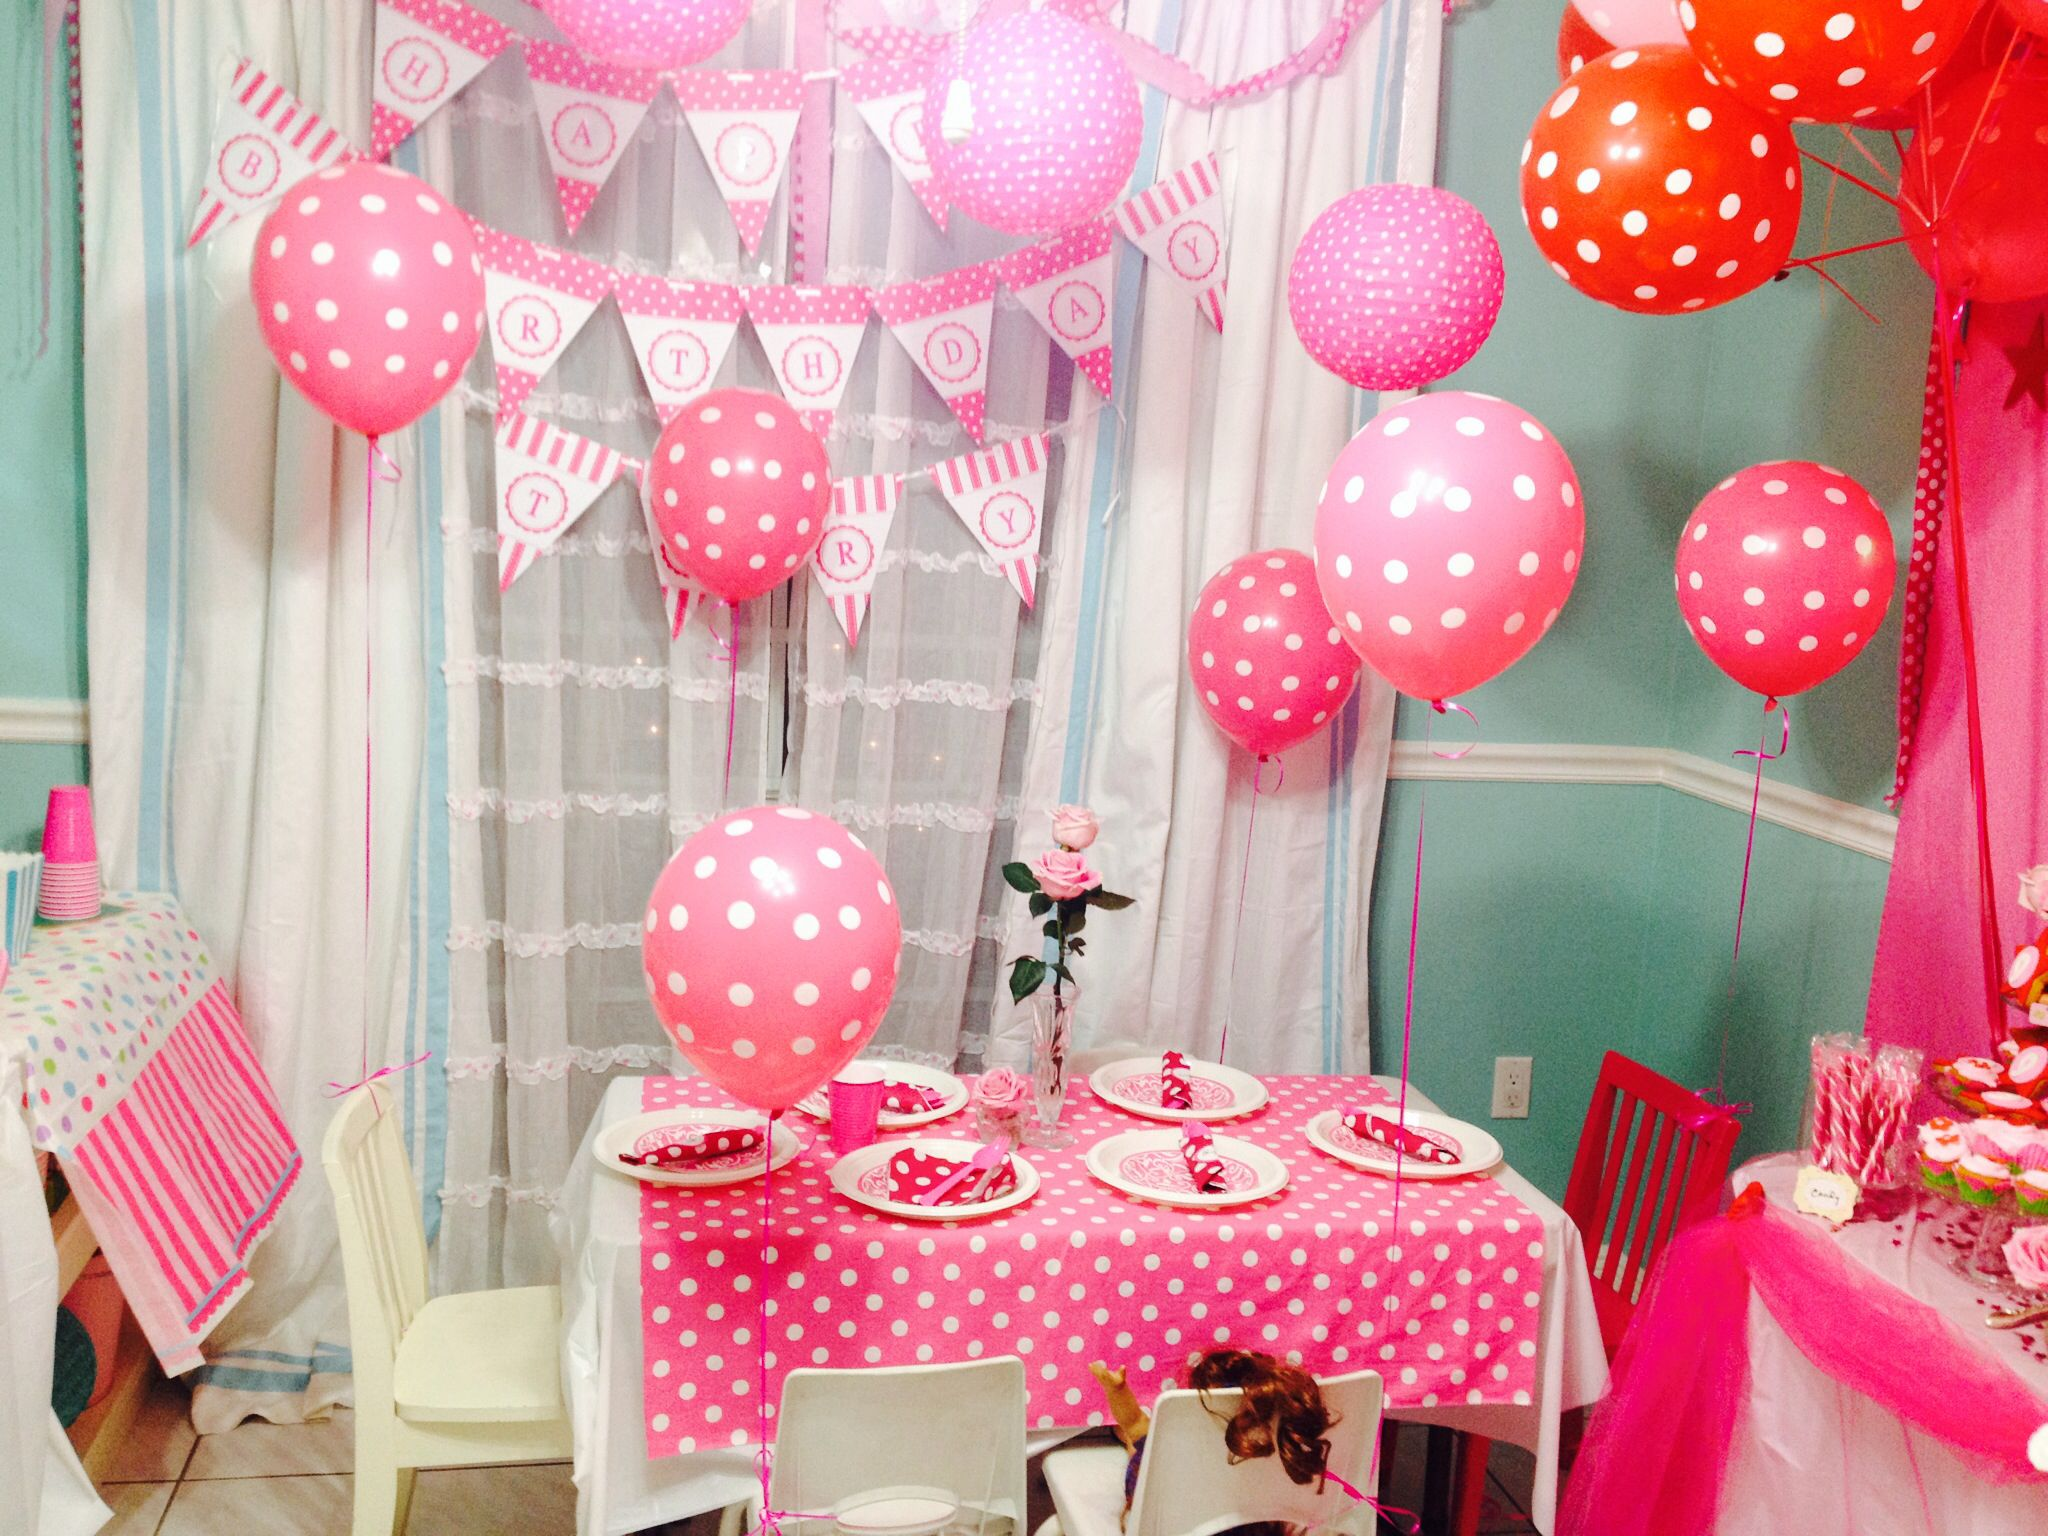 Room Decoration | American girl birthday, Party ...